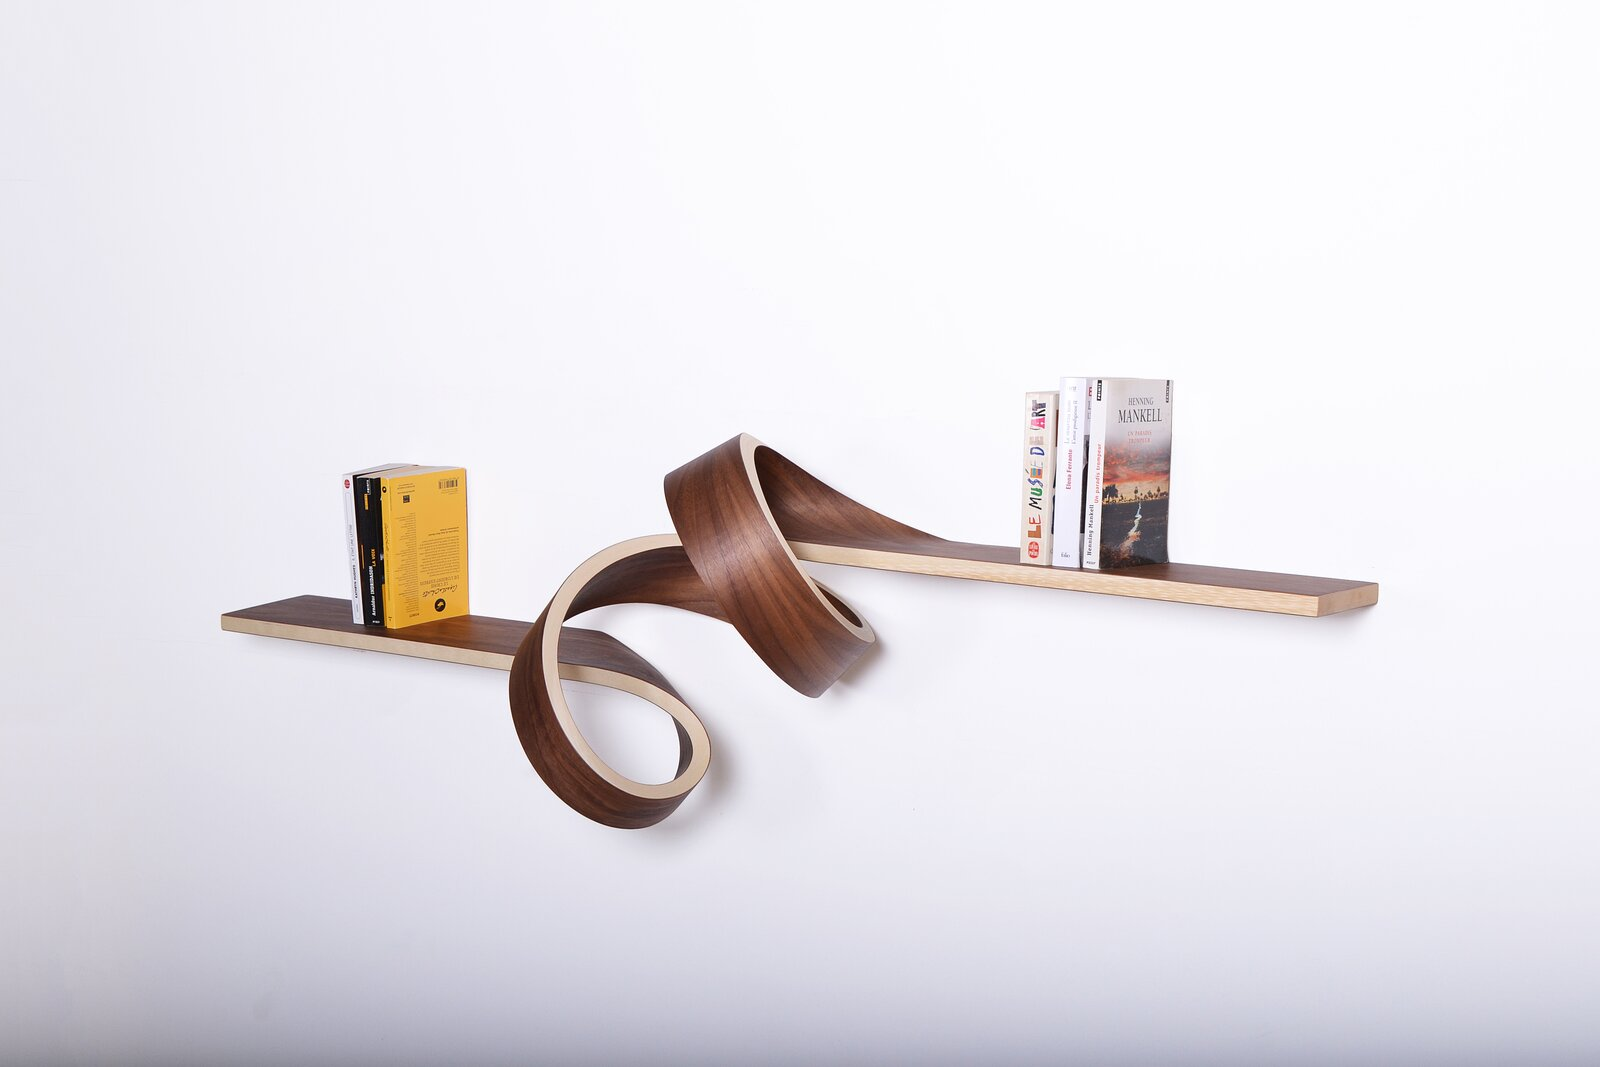 A bookshelf design by Kino Guérin  Photo 5 of 5 in Designer to Know: Kino Guérin